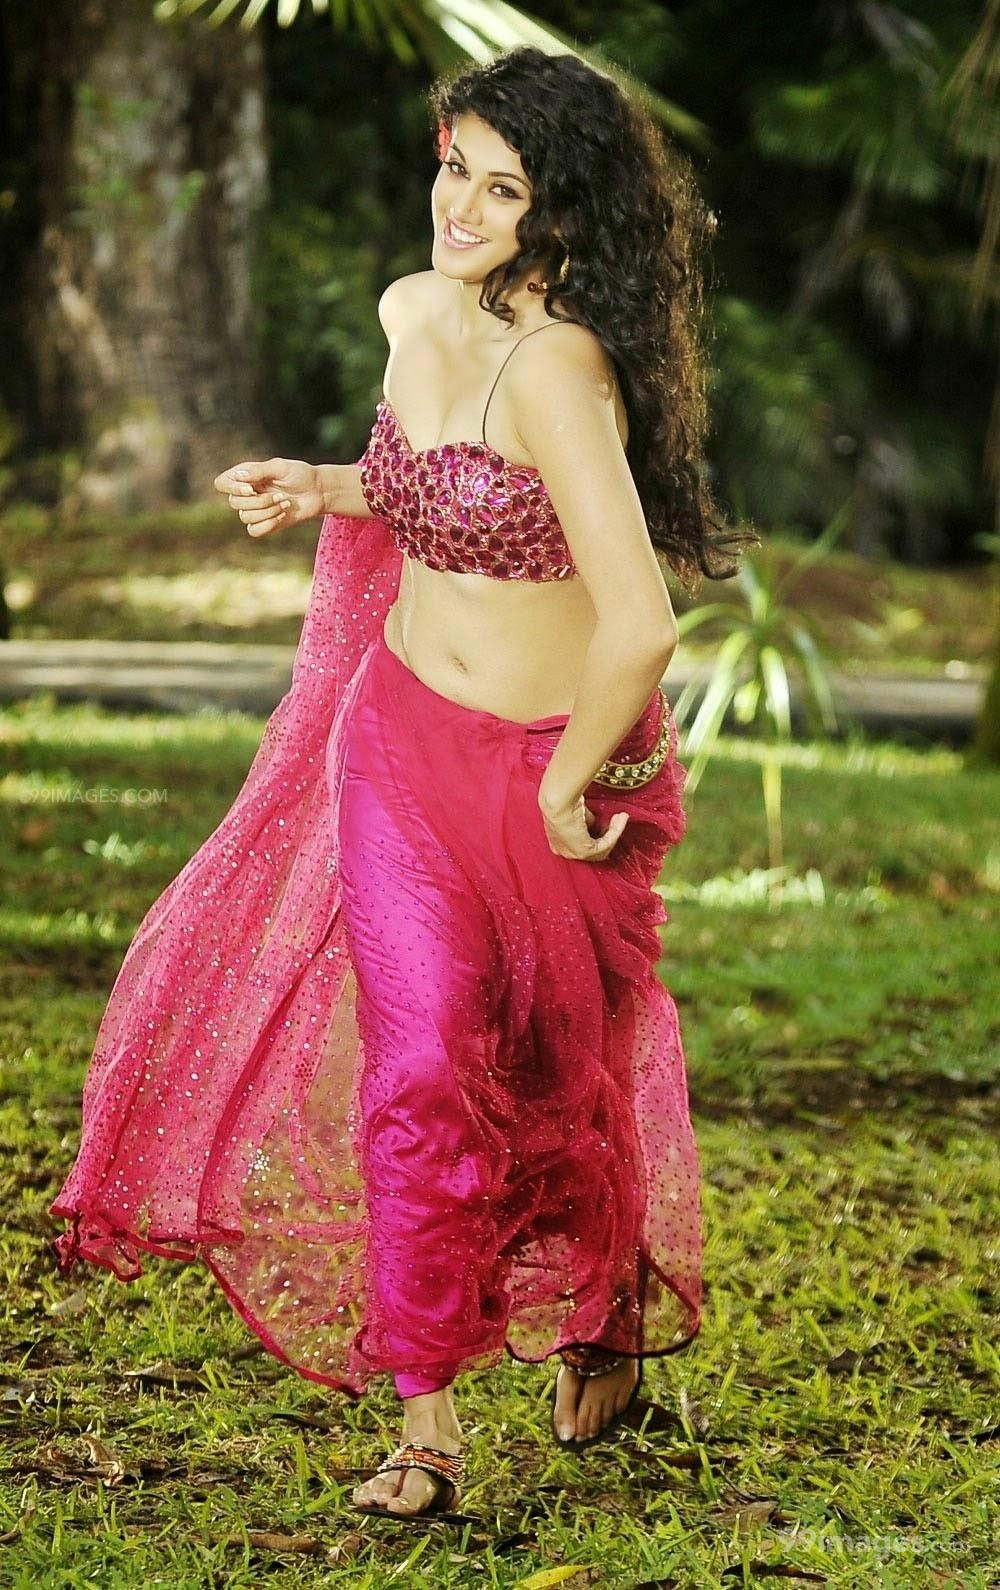 Taapsee Pannus latest beautiful stills in HD Quality (1080p) (325292) - Taapsee Pannu